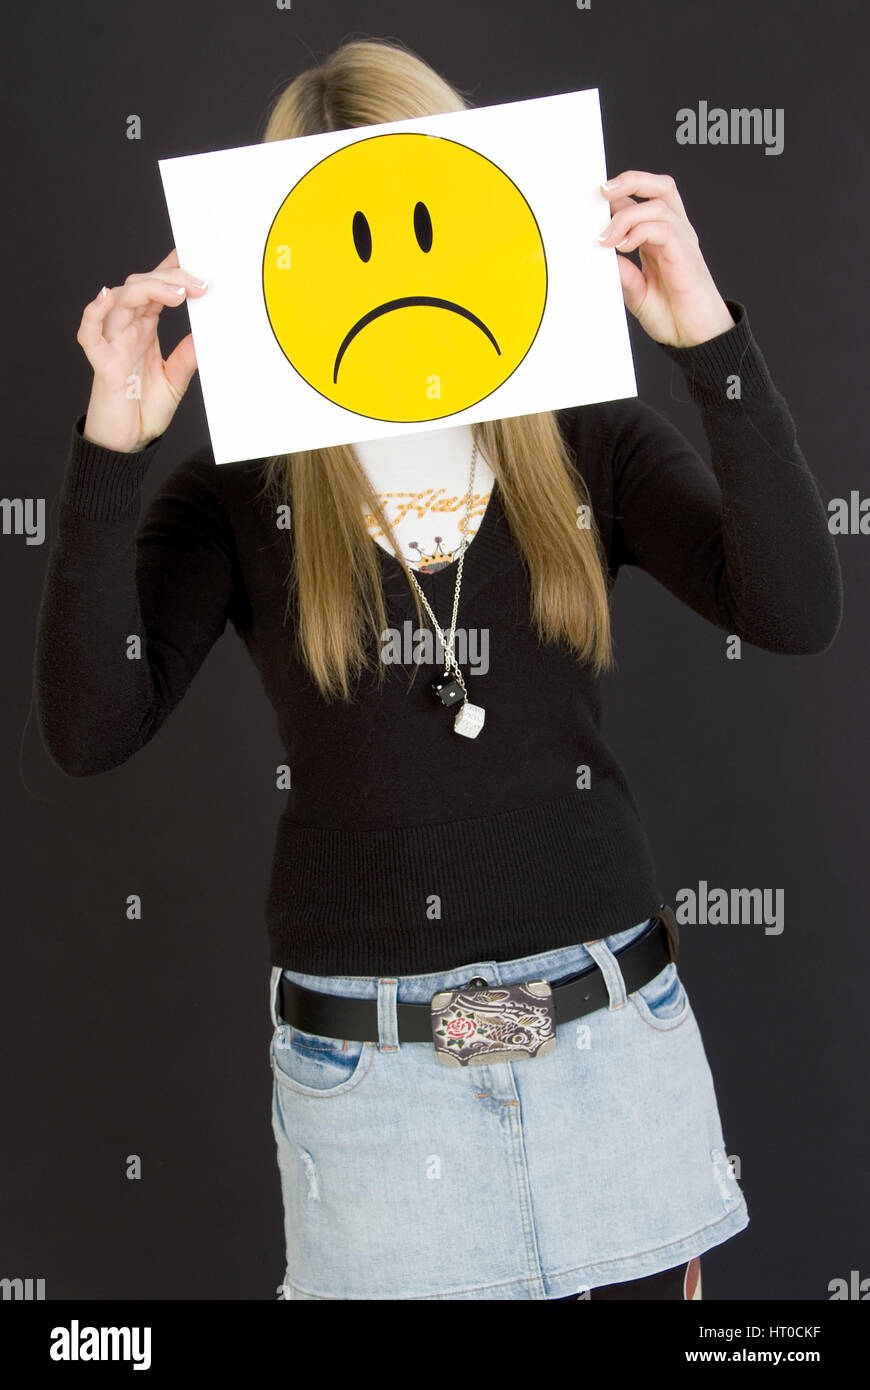 M‰dchen mit traurigem Smileygesicht - girl with sad smiley face - Stock Image